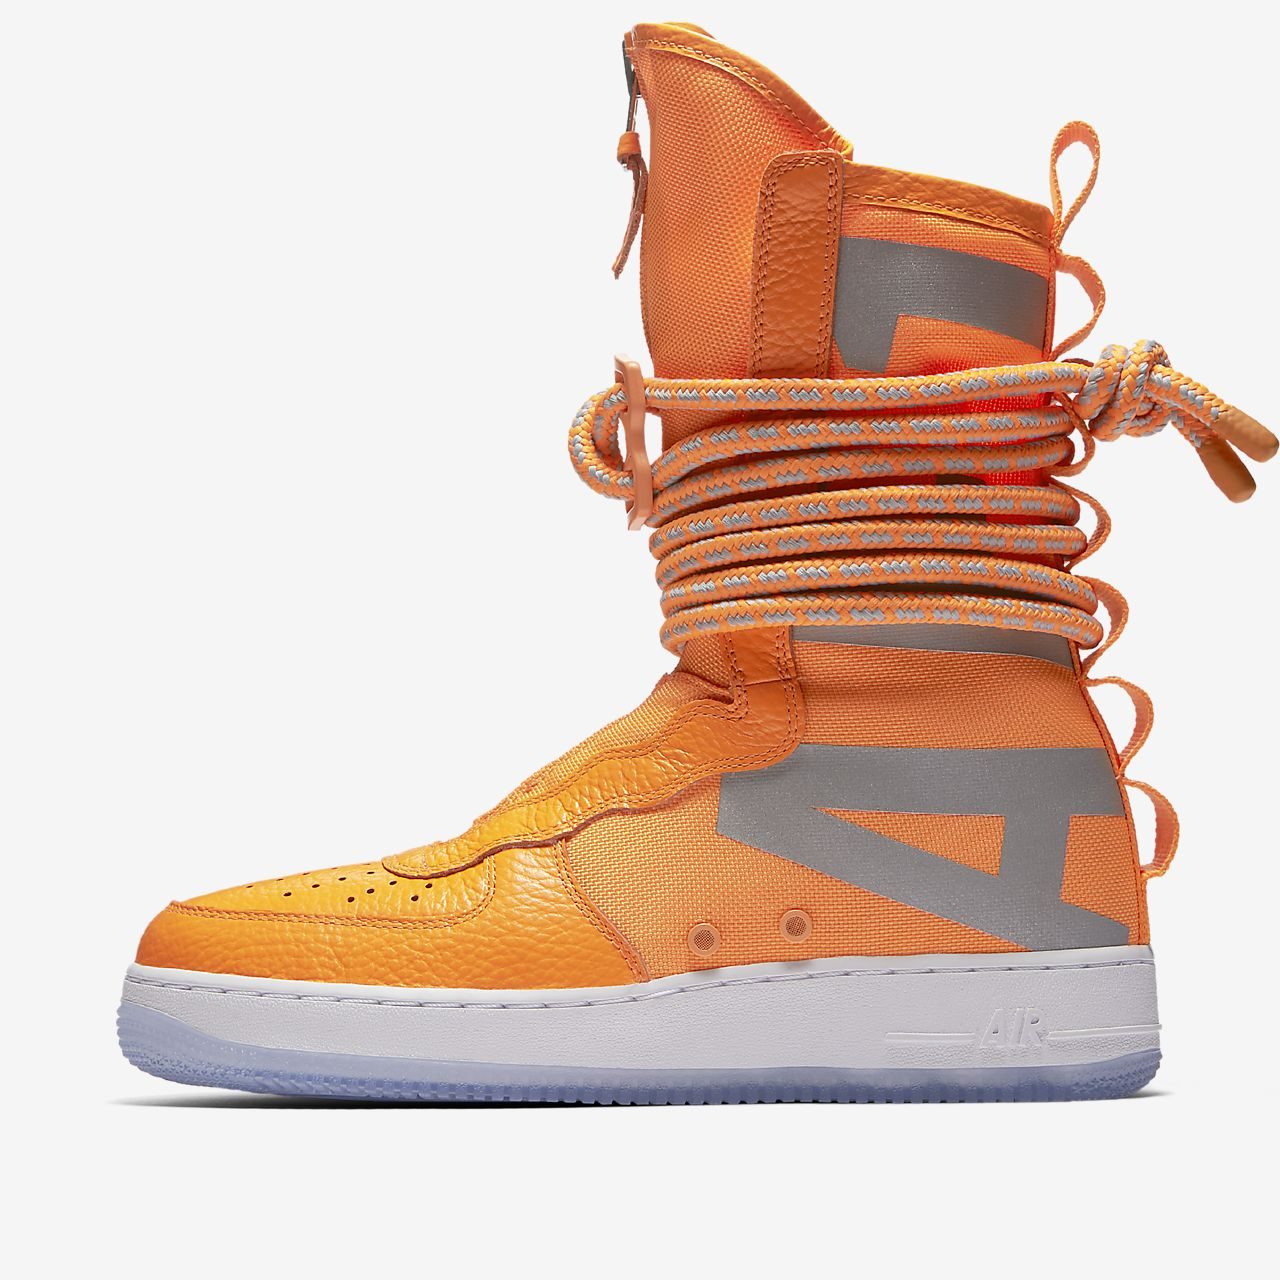 Botte Nike SF Air Force 1 High pour Homme